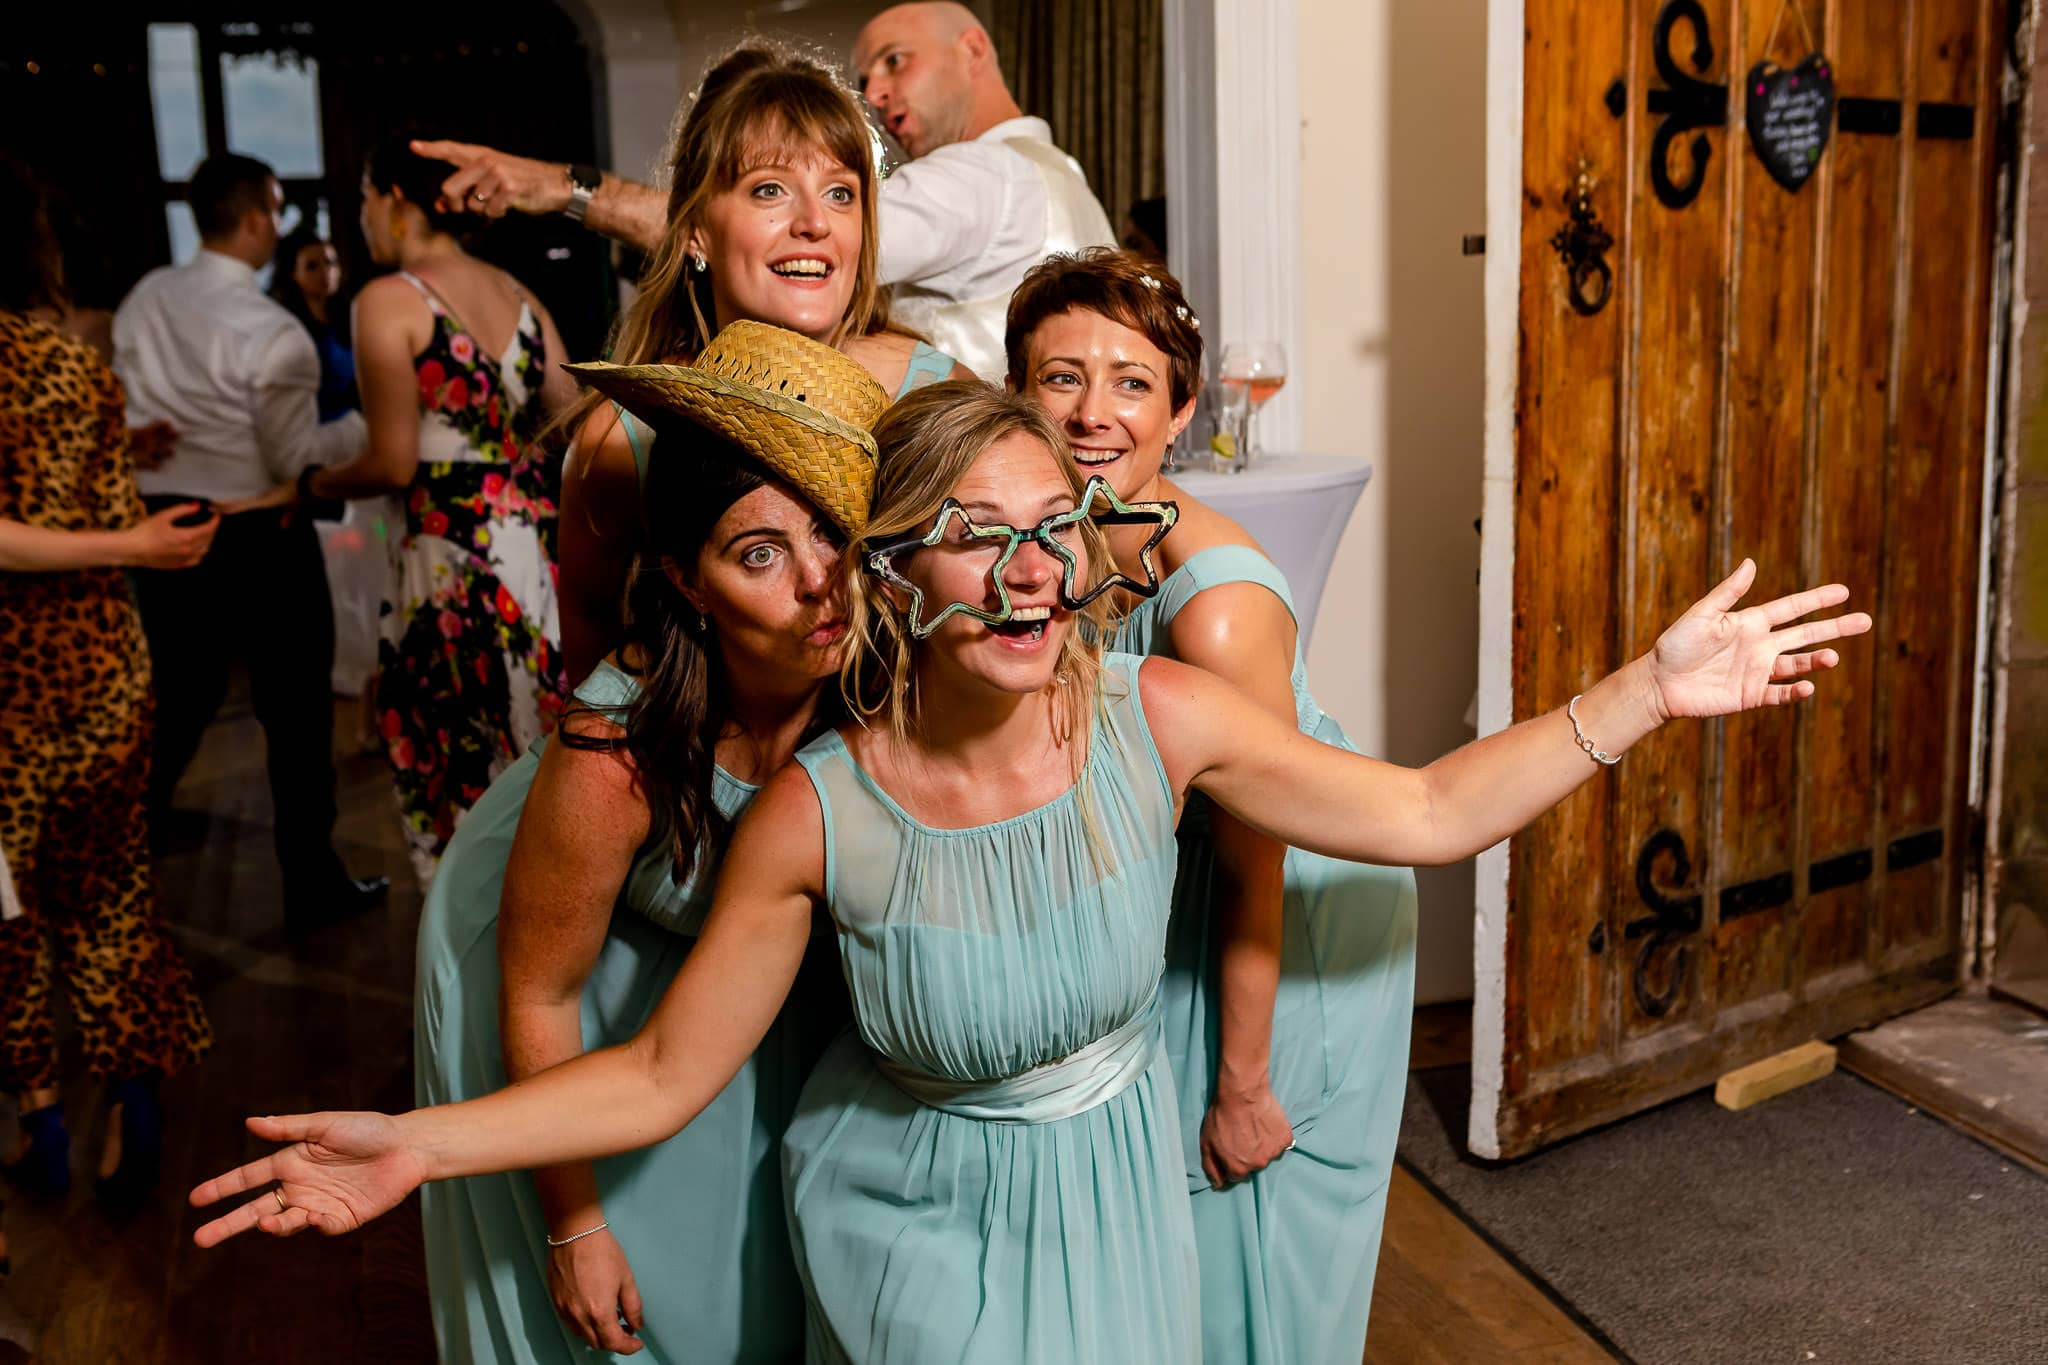 Art by Design - Caer Llan Wedding - Evening Party